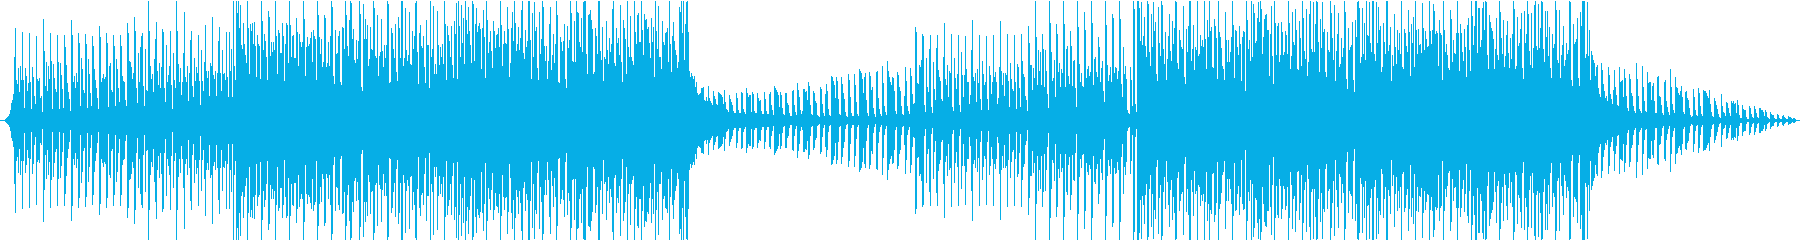 Bright and energetic dance music's reproduced waveform